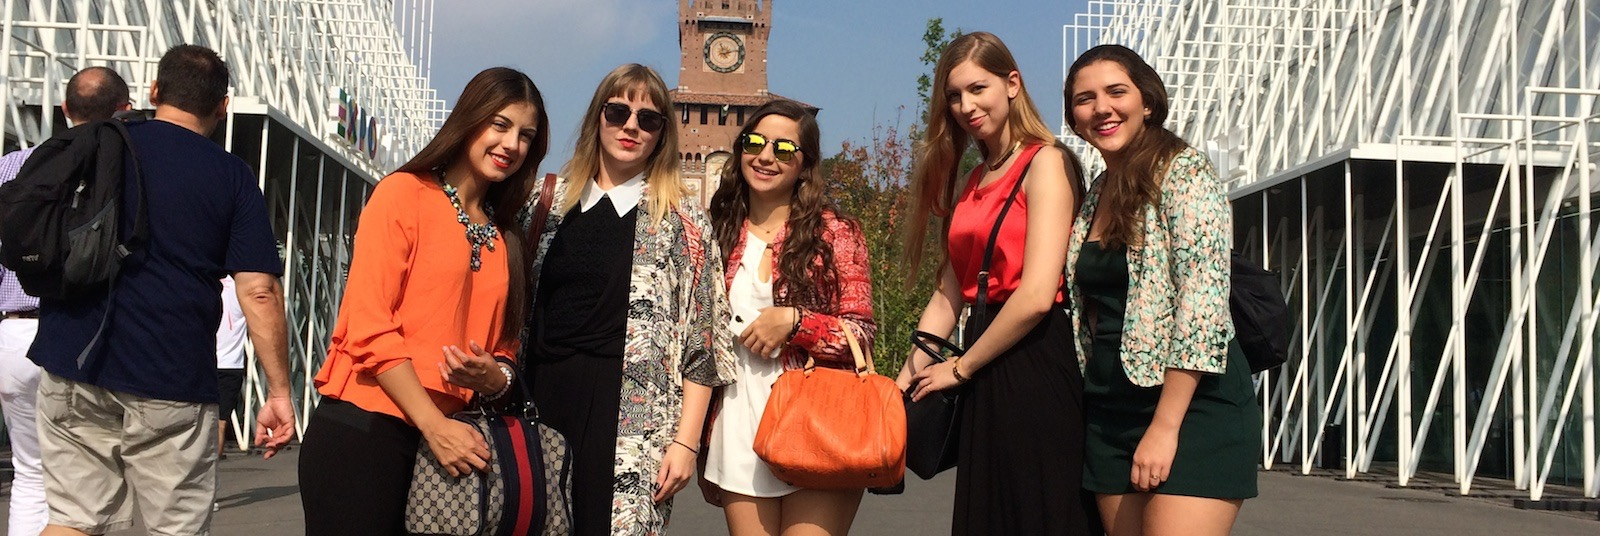 SRISA Students in Milan During the Fashion Week